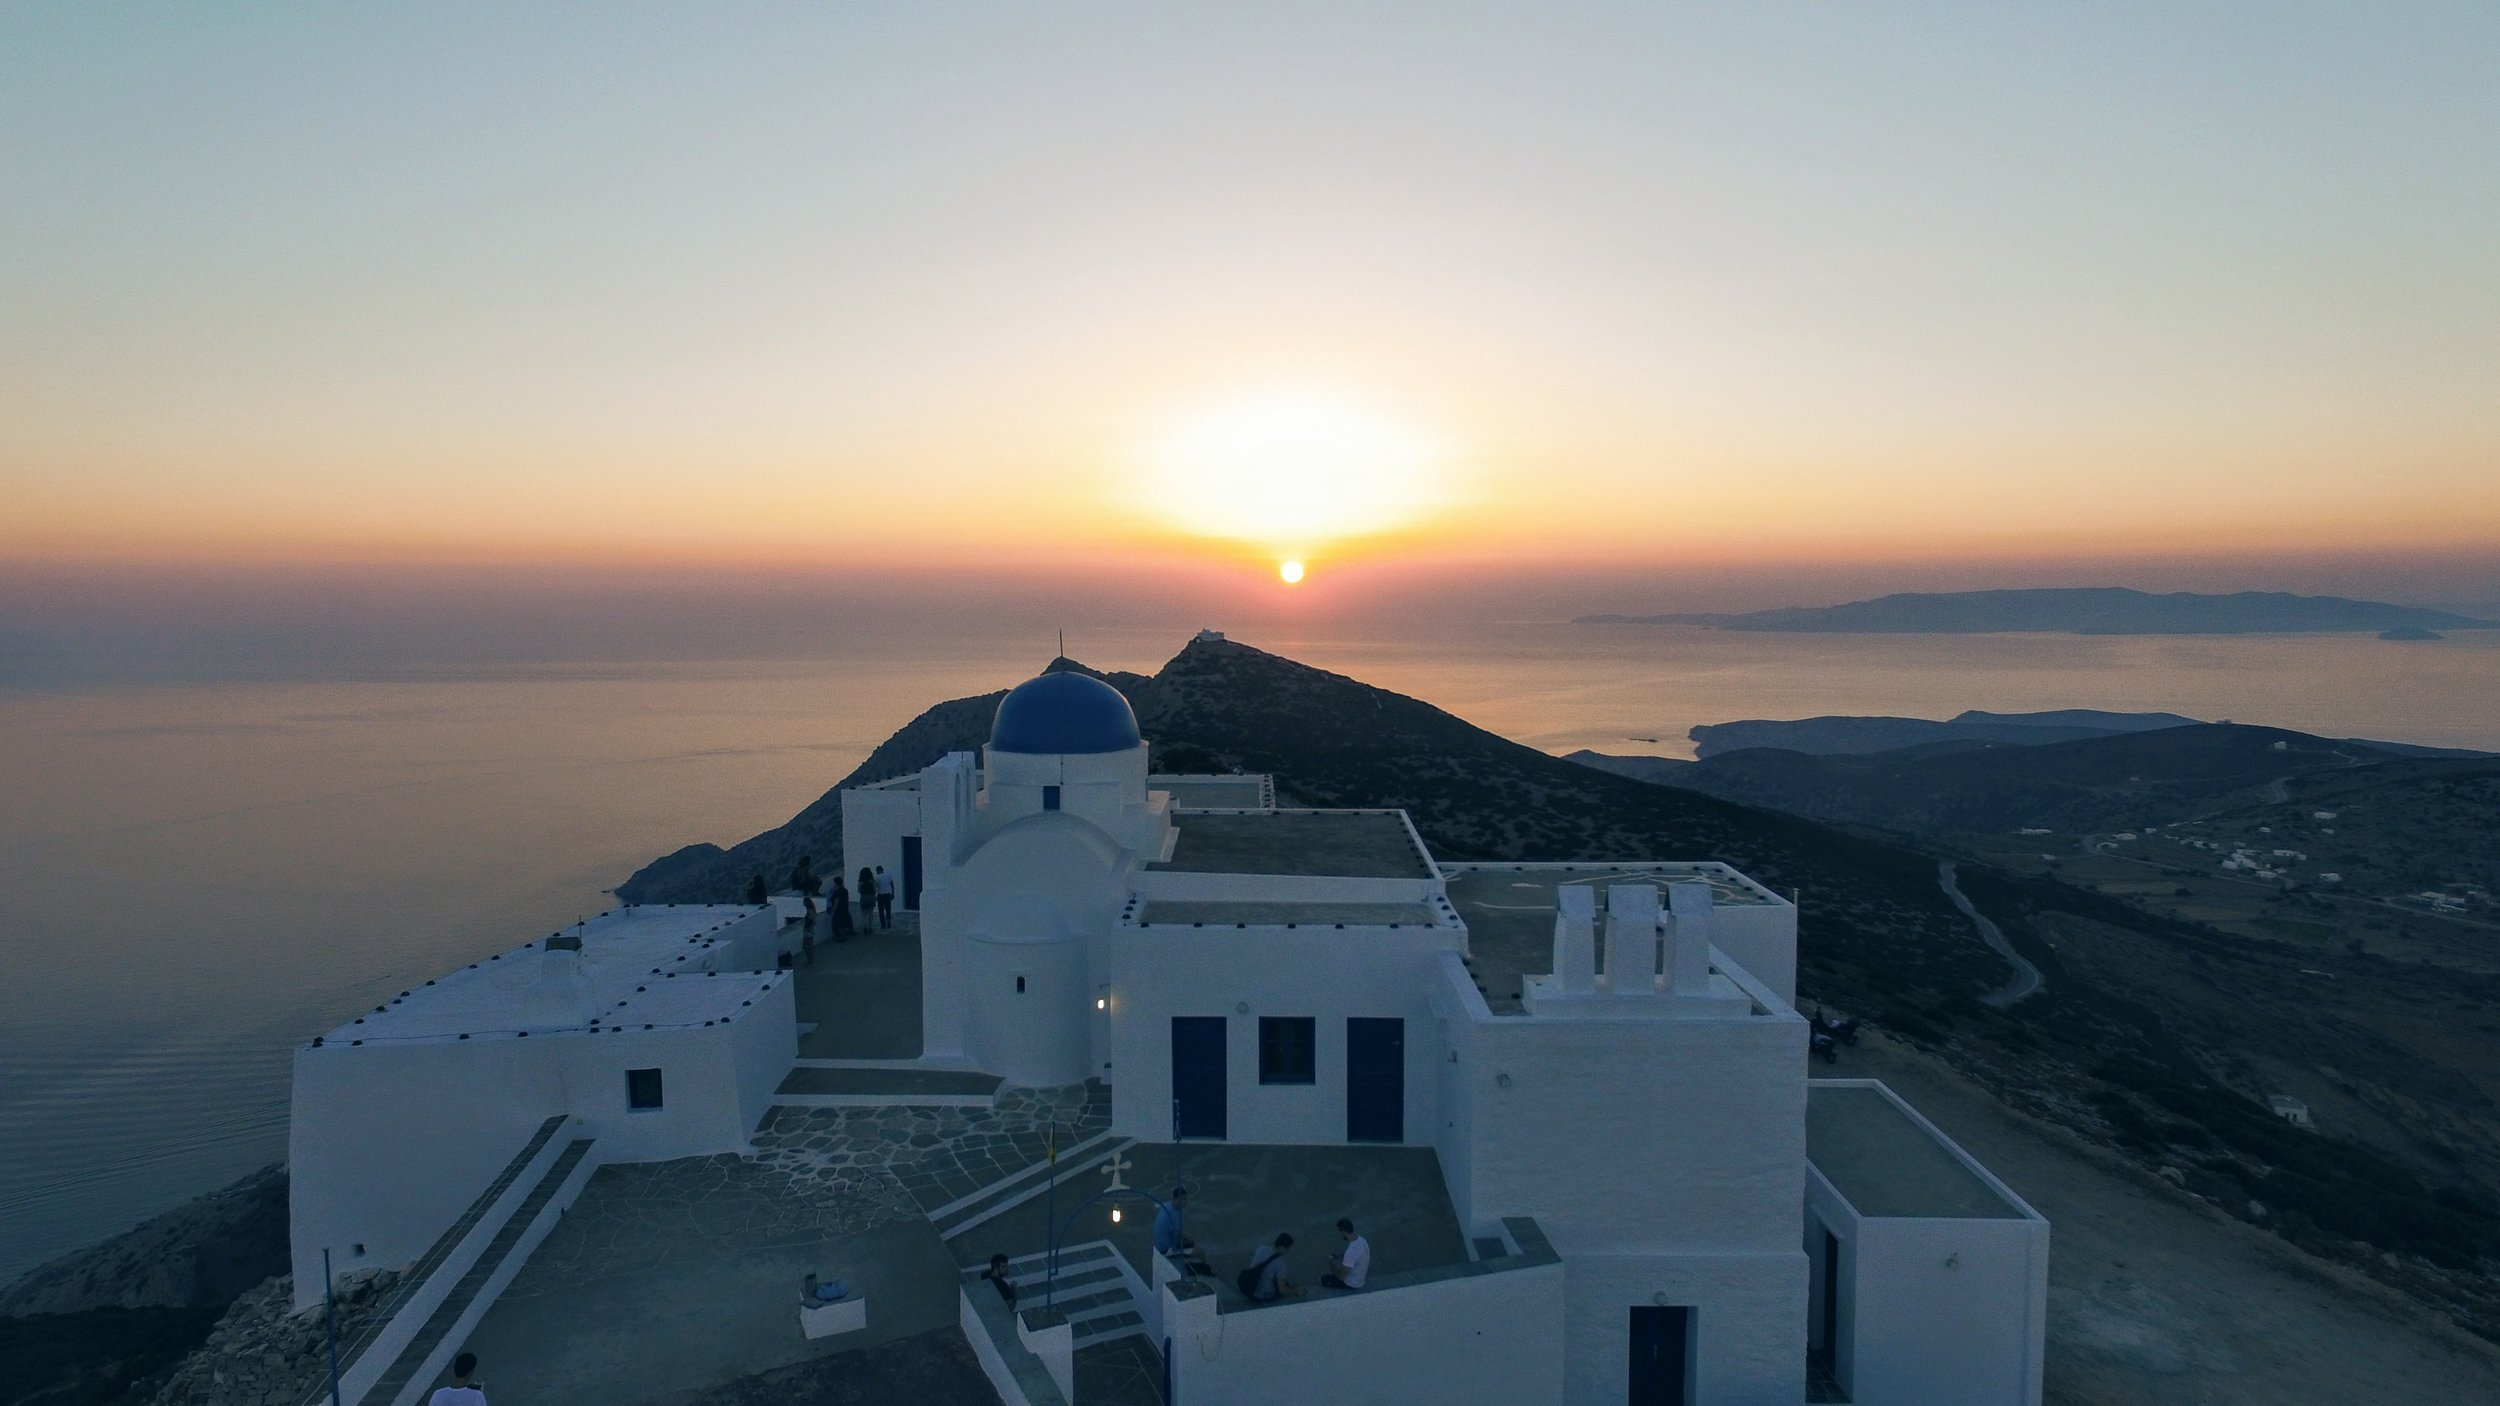 Agios Symeon: the perfect sunset with views all around to the Aegean sea